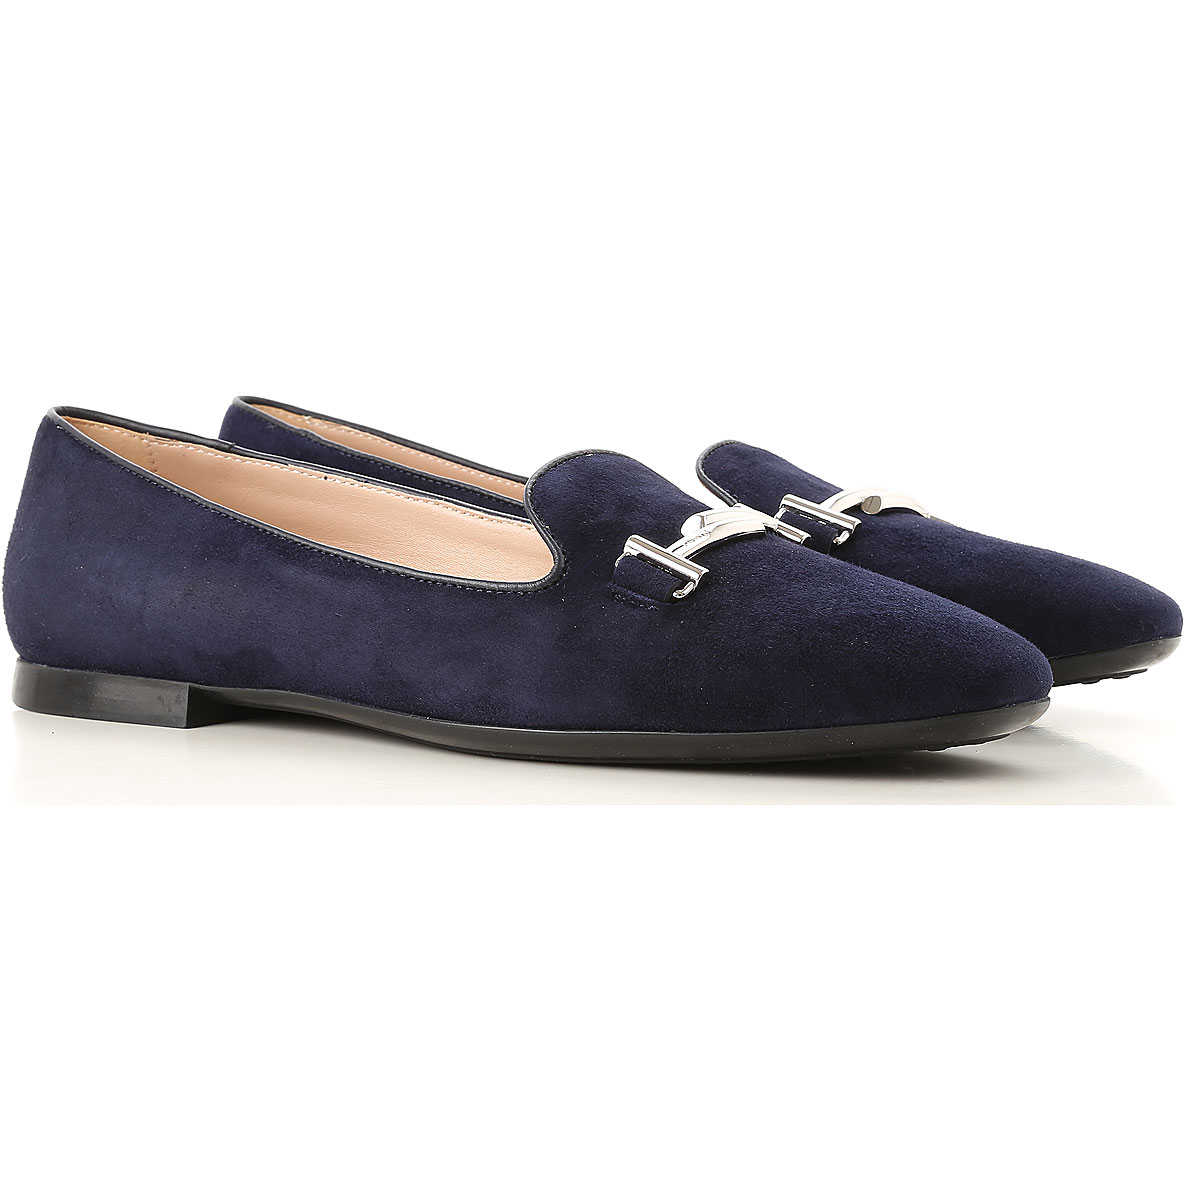 Tods Loafers for Women On Sale galaxy blue SE - GOOFASH